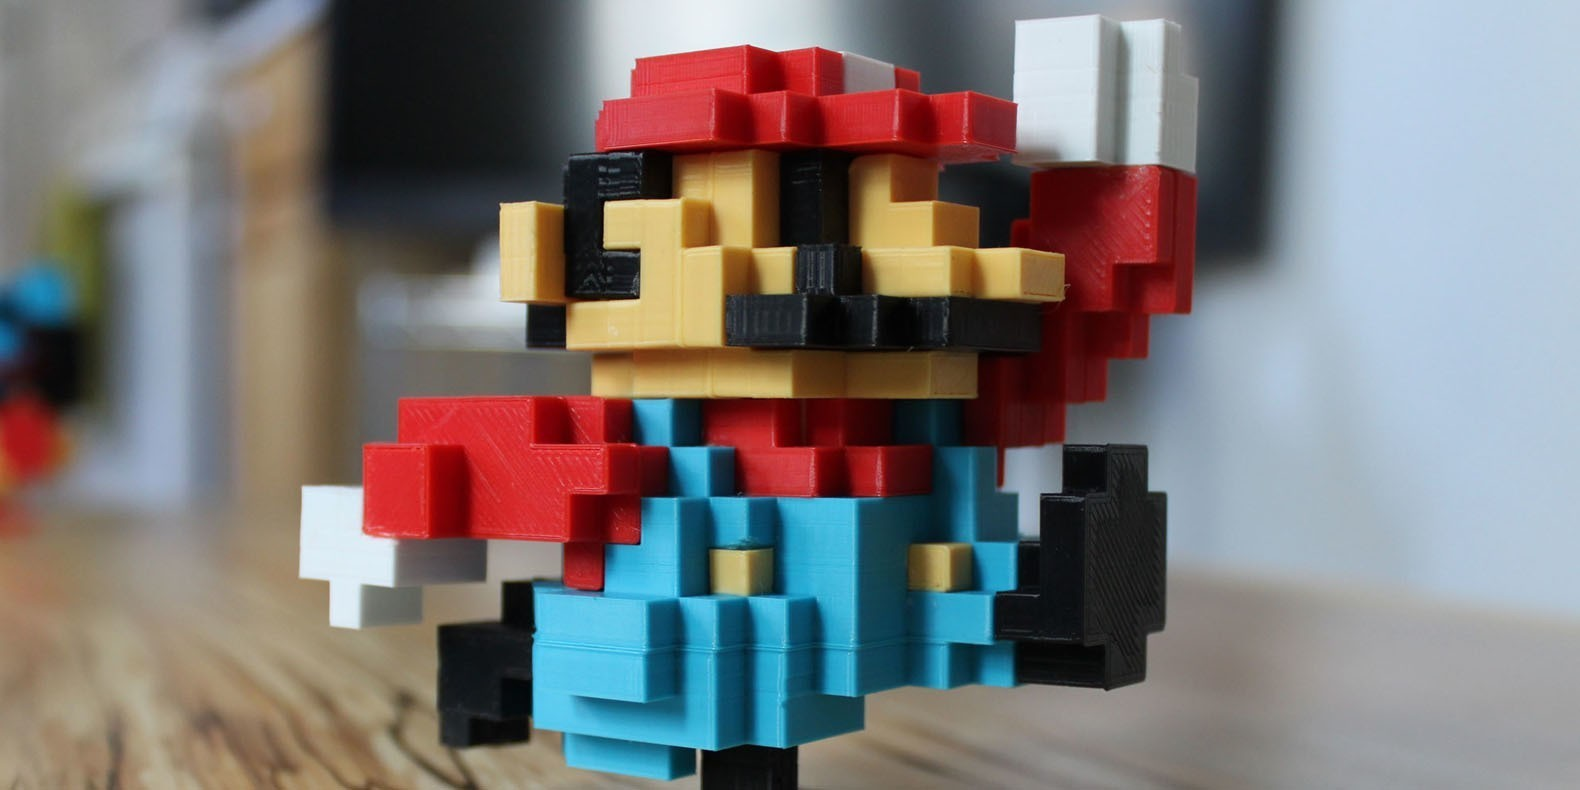 Here is a selection of the best Mario 3D models to make with a 3D printer